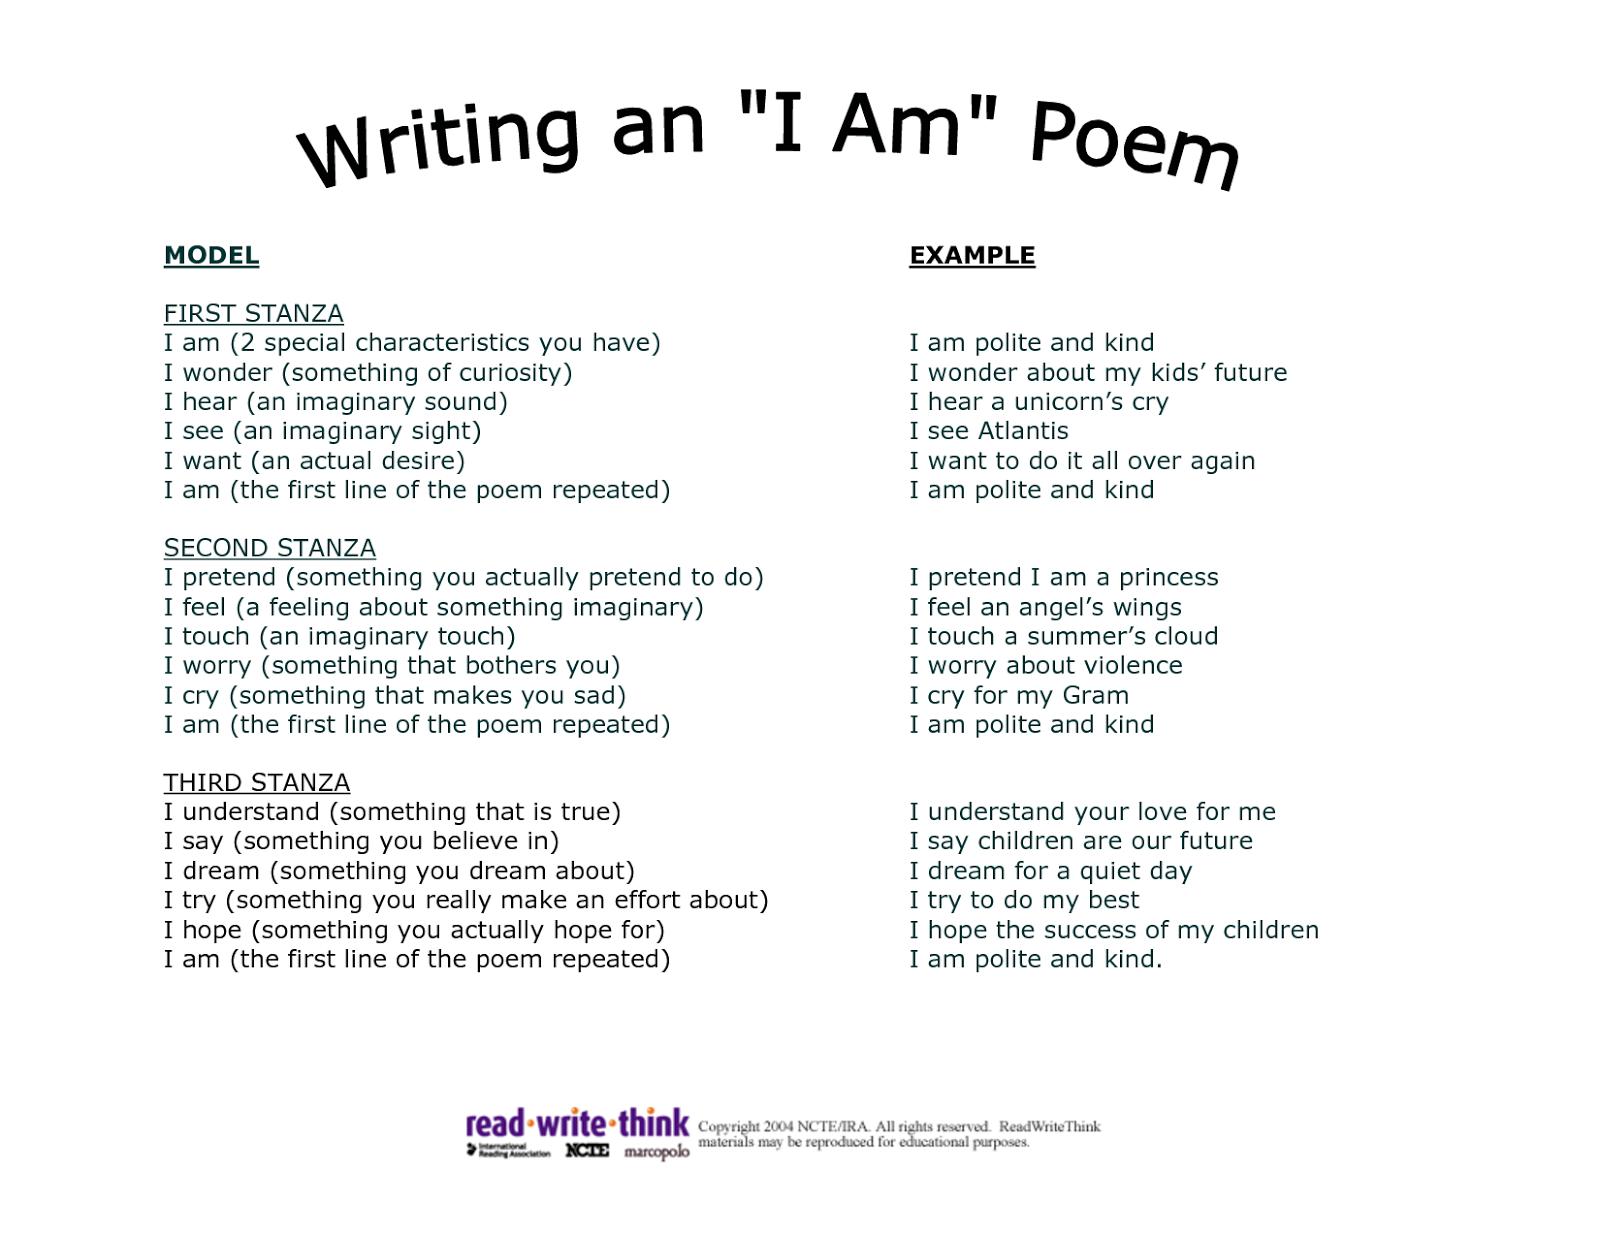 004 I Am Poem Template Hti3gt2t Essay Of Who Awesome As A Person Filipino Writing Aim In Life Full